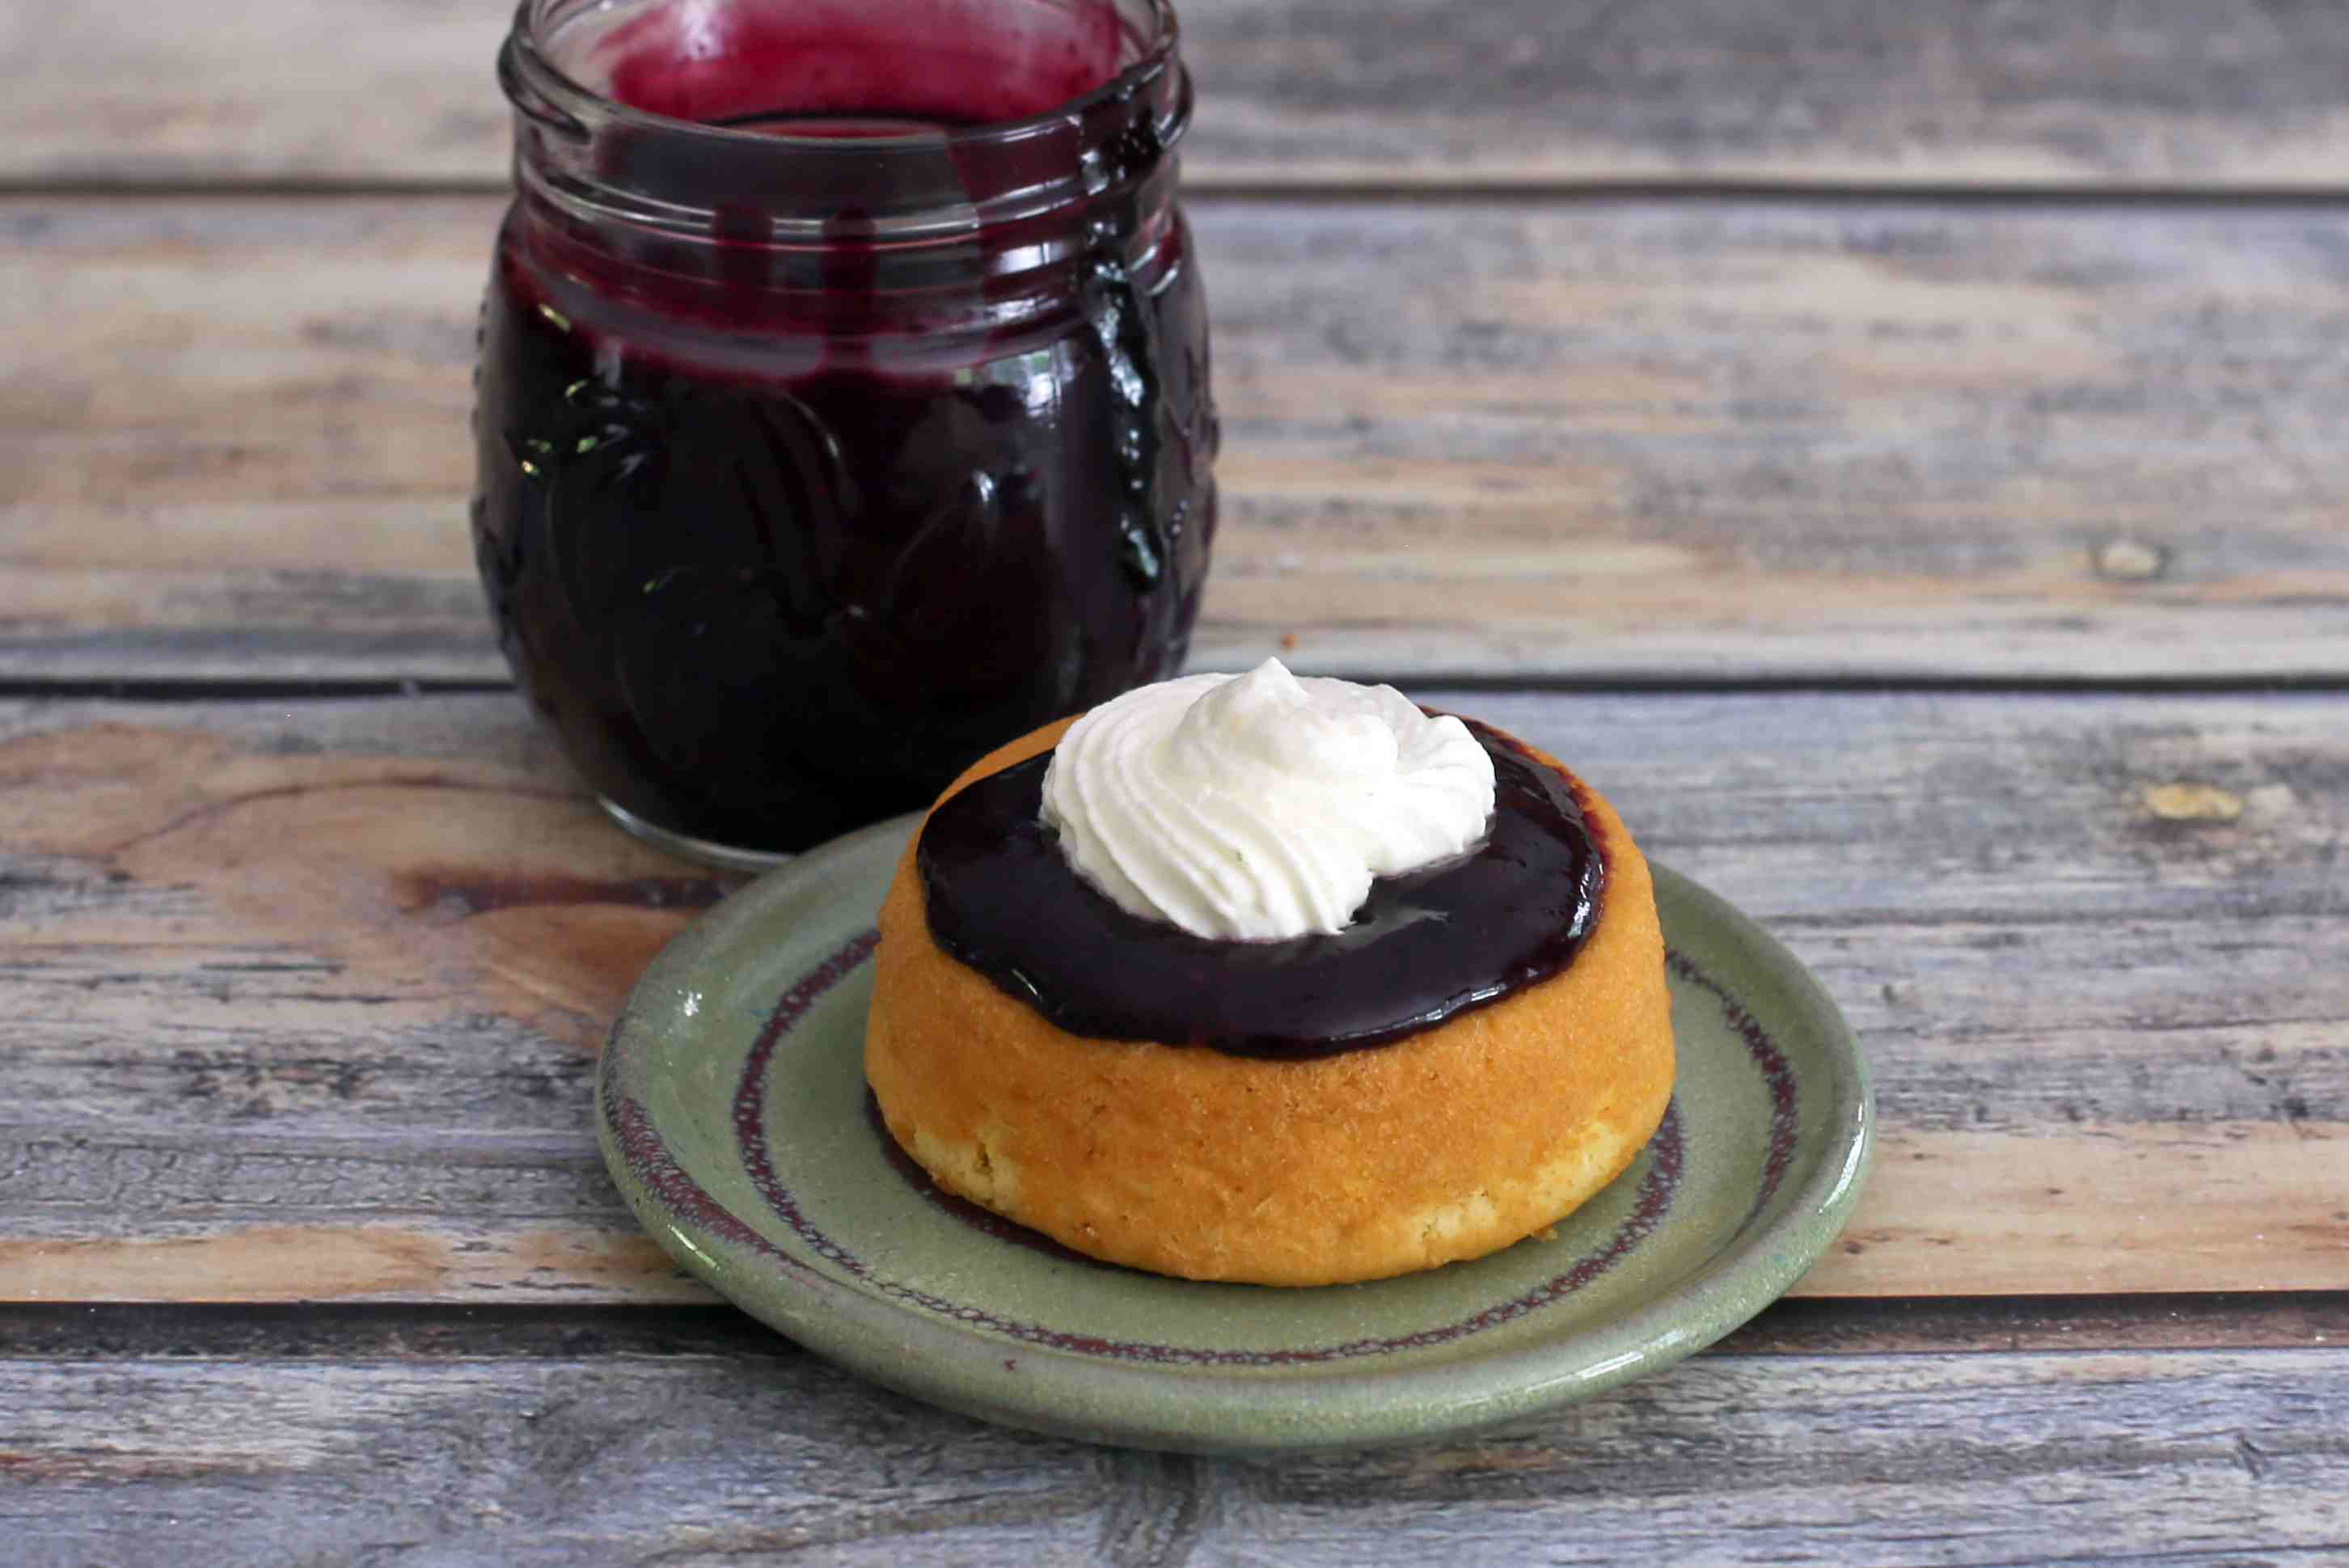 Blueberry curd with lemon